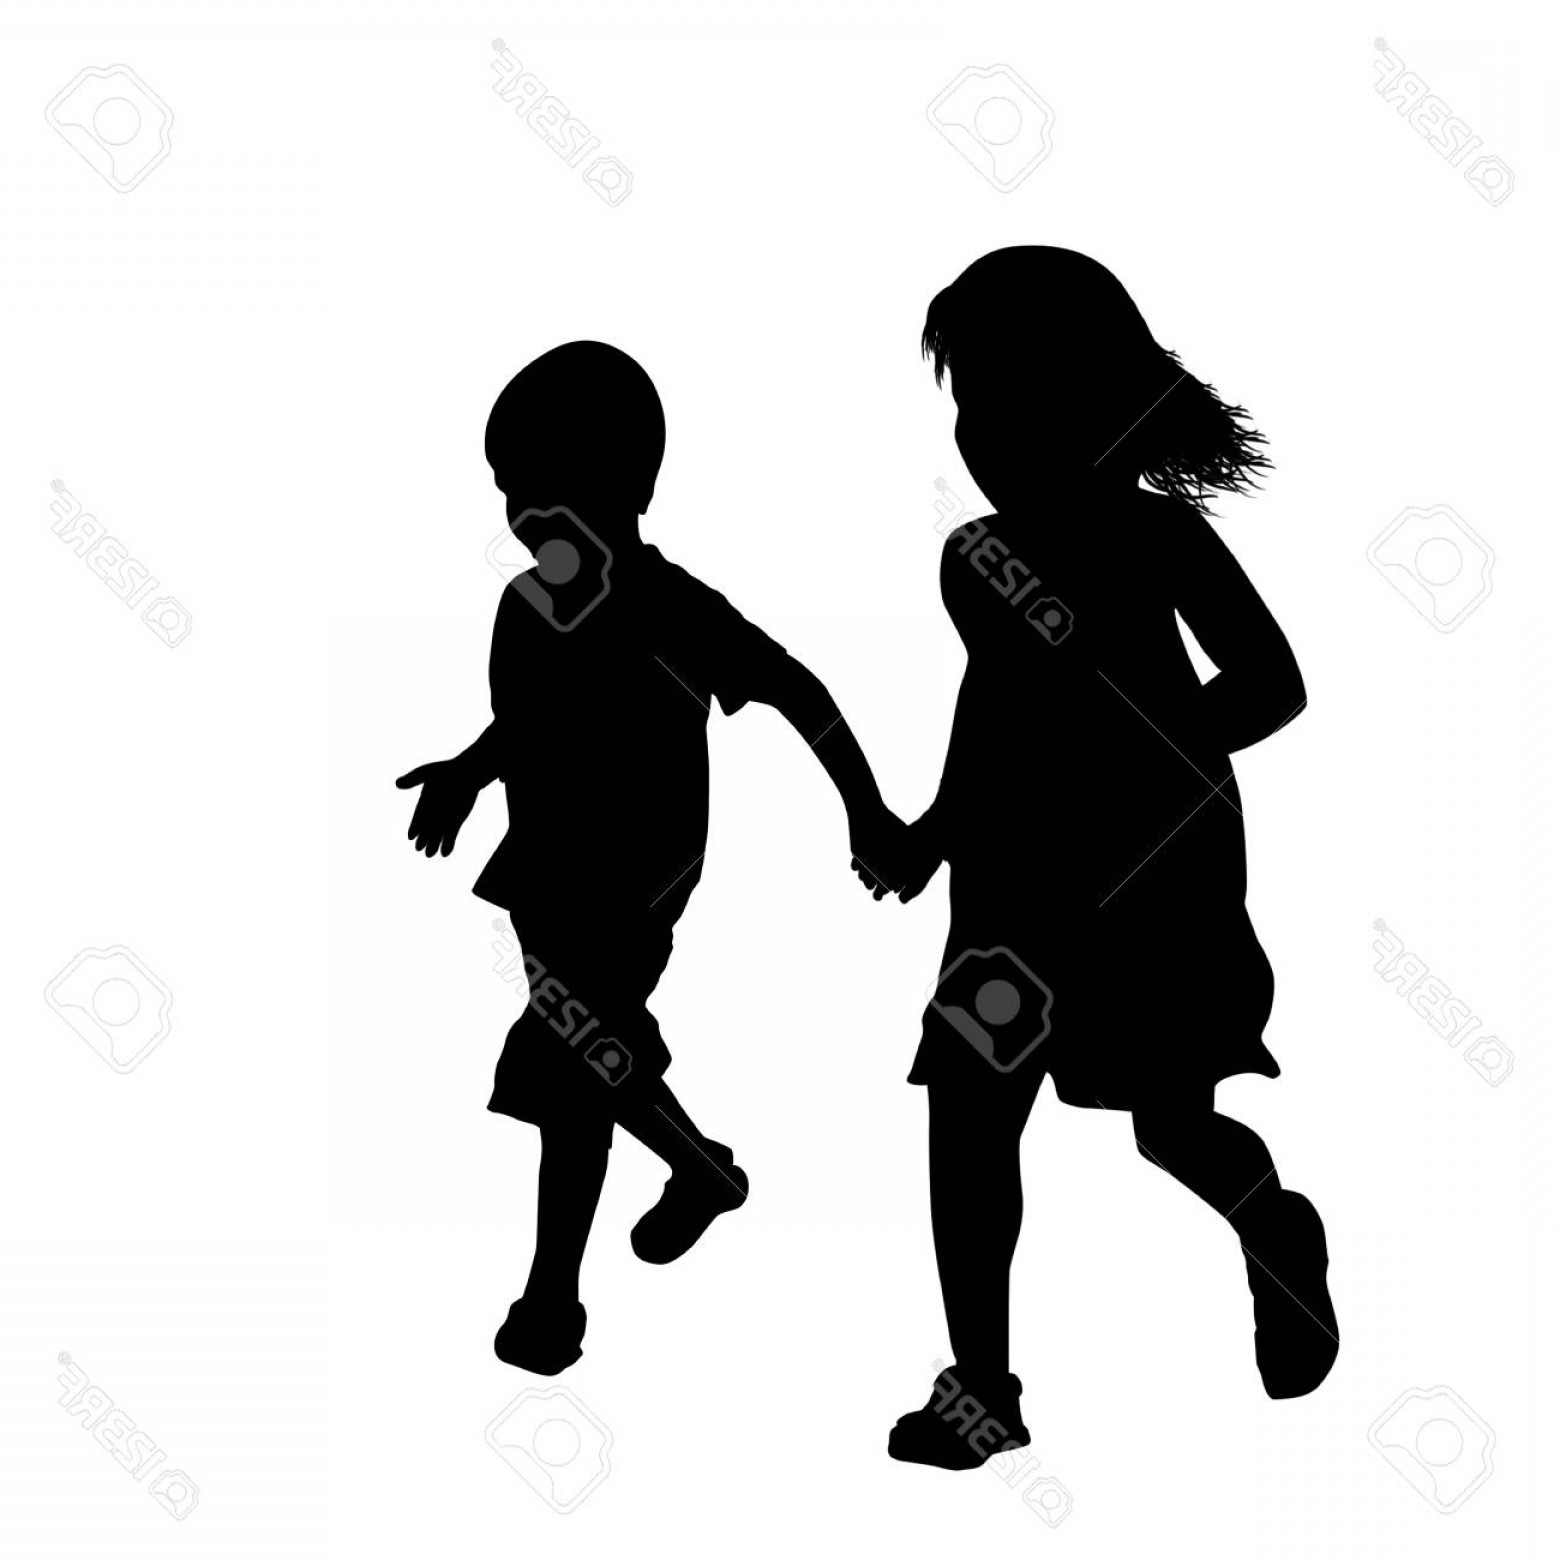 Little Boy Silhouette Vector: Photostock Vector Little Boy And Girl Silhouette Running Together On White Background Vector Illustration